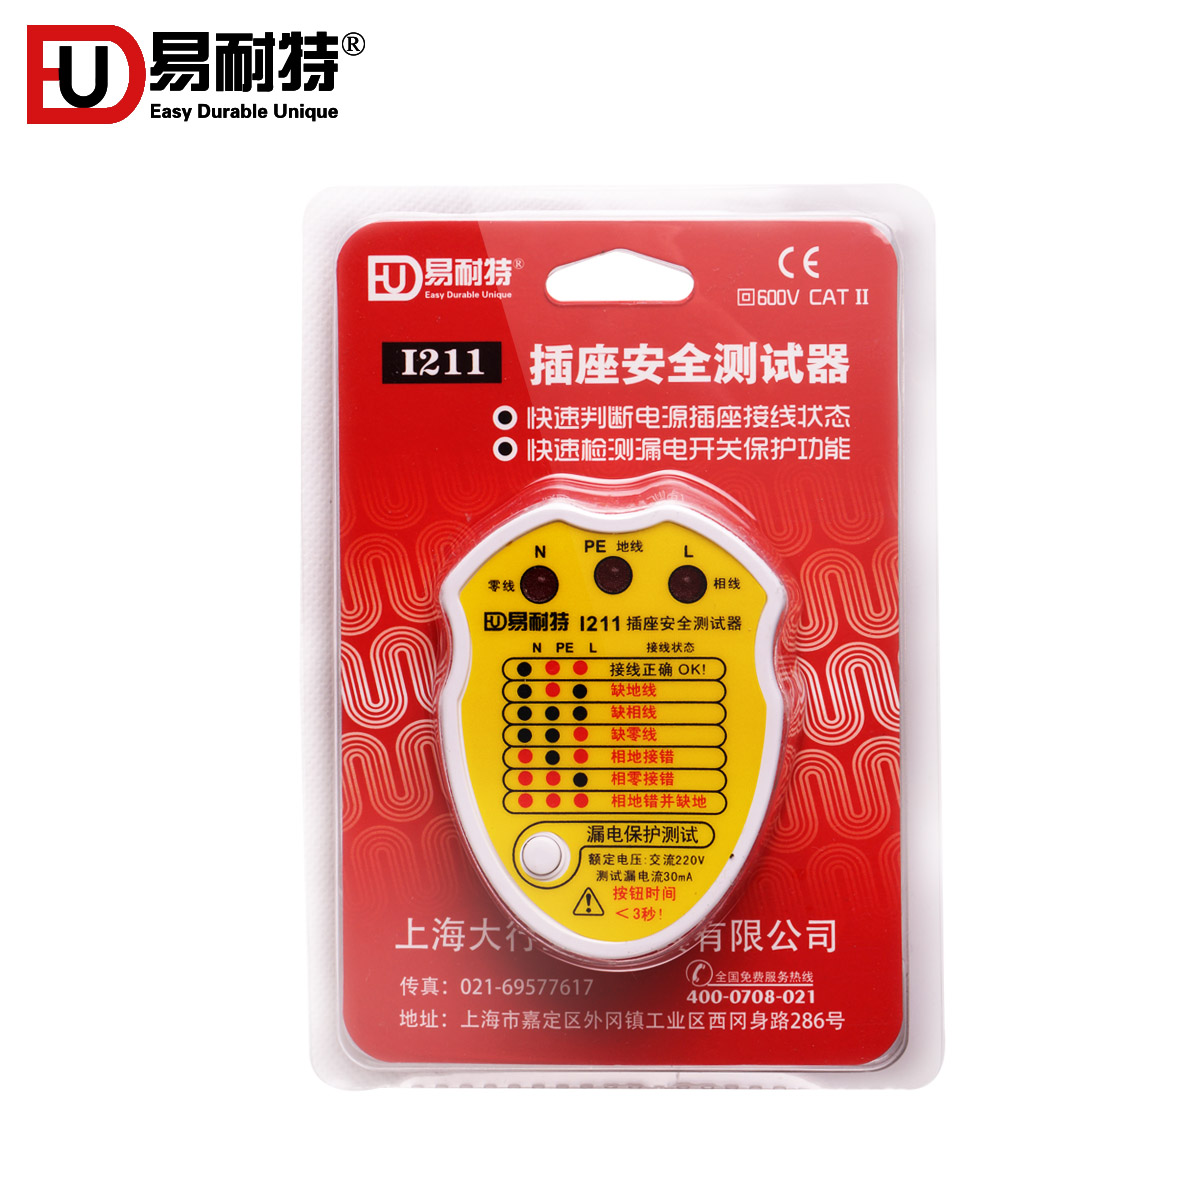 China Gfci Shopping Guide At Alibabacom Home Gt 15 Or 20 Amp 2008 Ul Duplex Receptacle Get Quotations Easy Knight Practical I211 Safety Socket Tester Electroscope